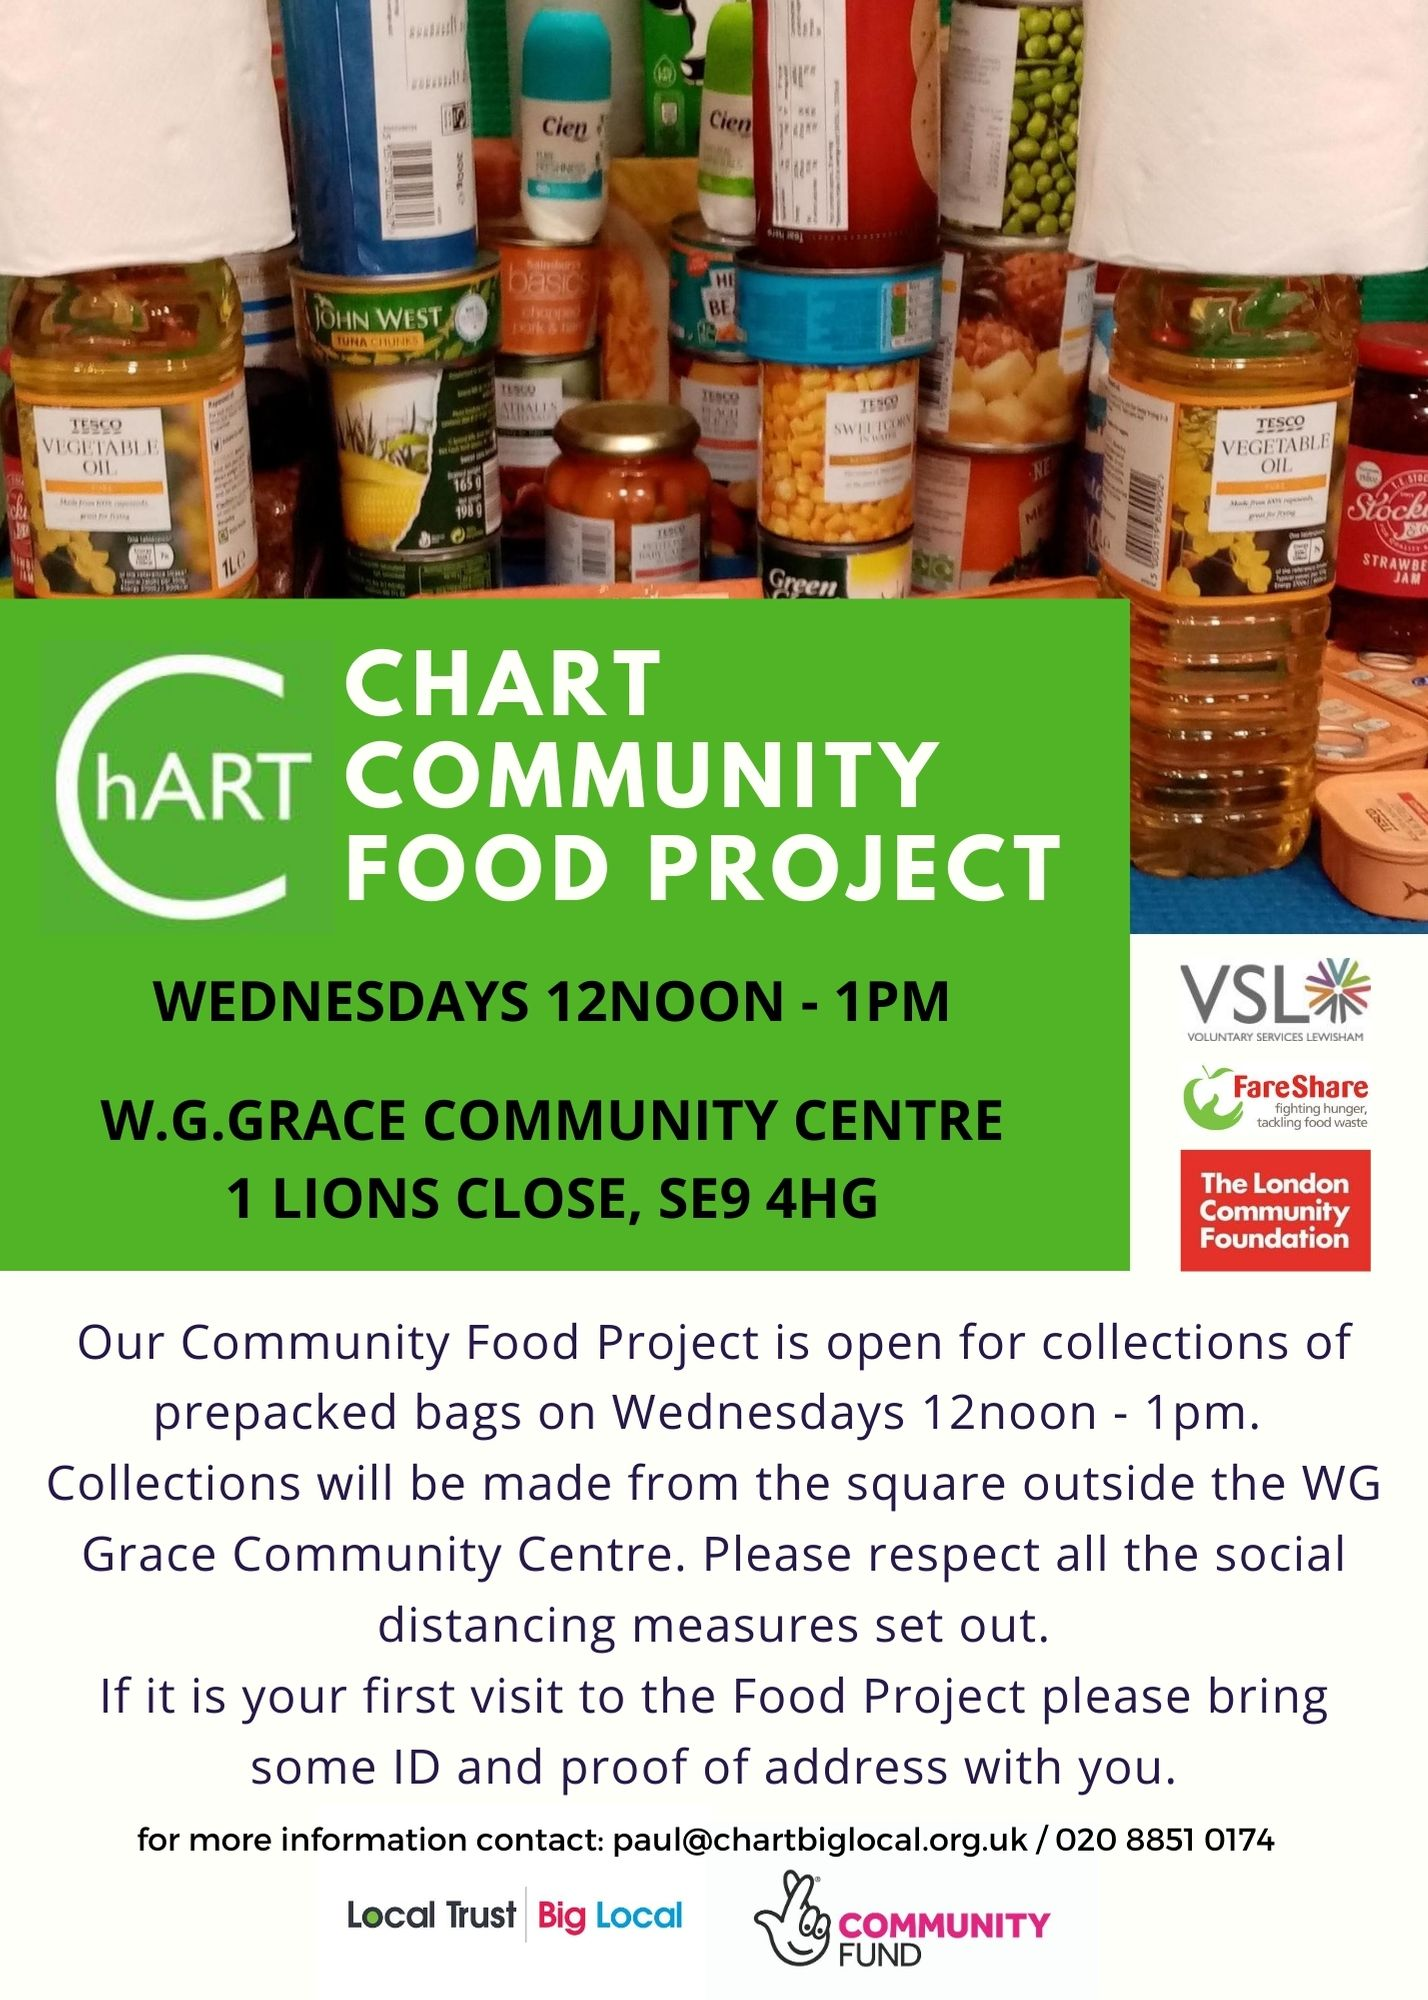 "Poster has image of typical  food parcel items green box with white text ""Chart Community Food Project"" underneath black text Wednesdays 12noon - 1pm, WG Grace Community Centre 1 Lions Close. at bottom of poster black text on white background Our Community Food Project is open for collections of prepacked bags on Wednesdays 12noon - 1pm.  Collections will be made from the square outside the WG Grace Community Centre. Please respect all the social distancing measures set out. If it is your first visit to the Food Project please bring some ID and proof of address with you. for more information contact Paul: paul@chartbiglocal.org.uk / 020 8851 0174"